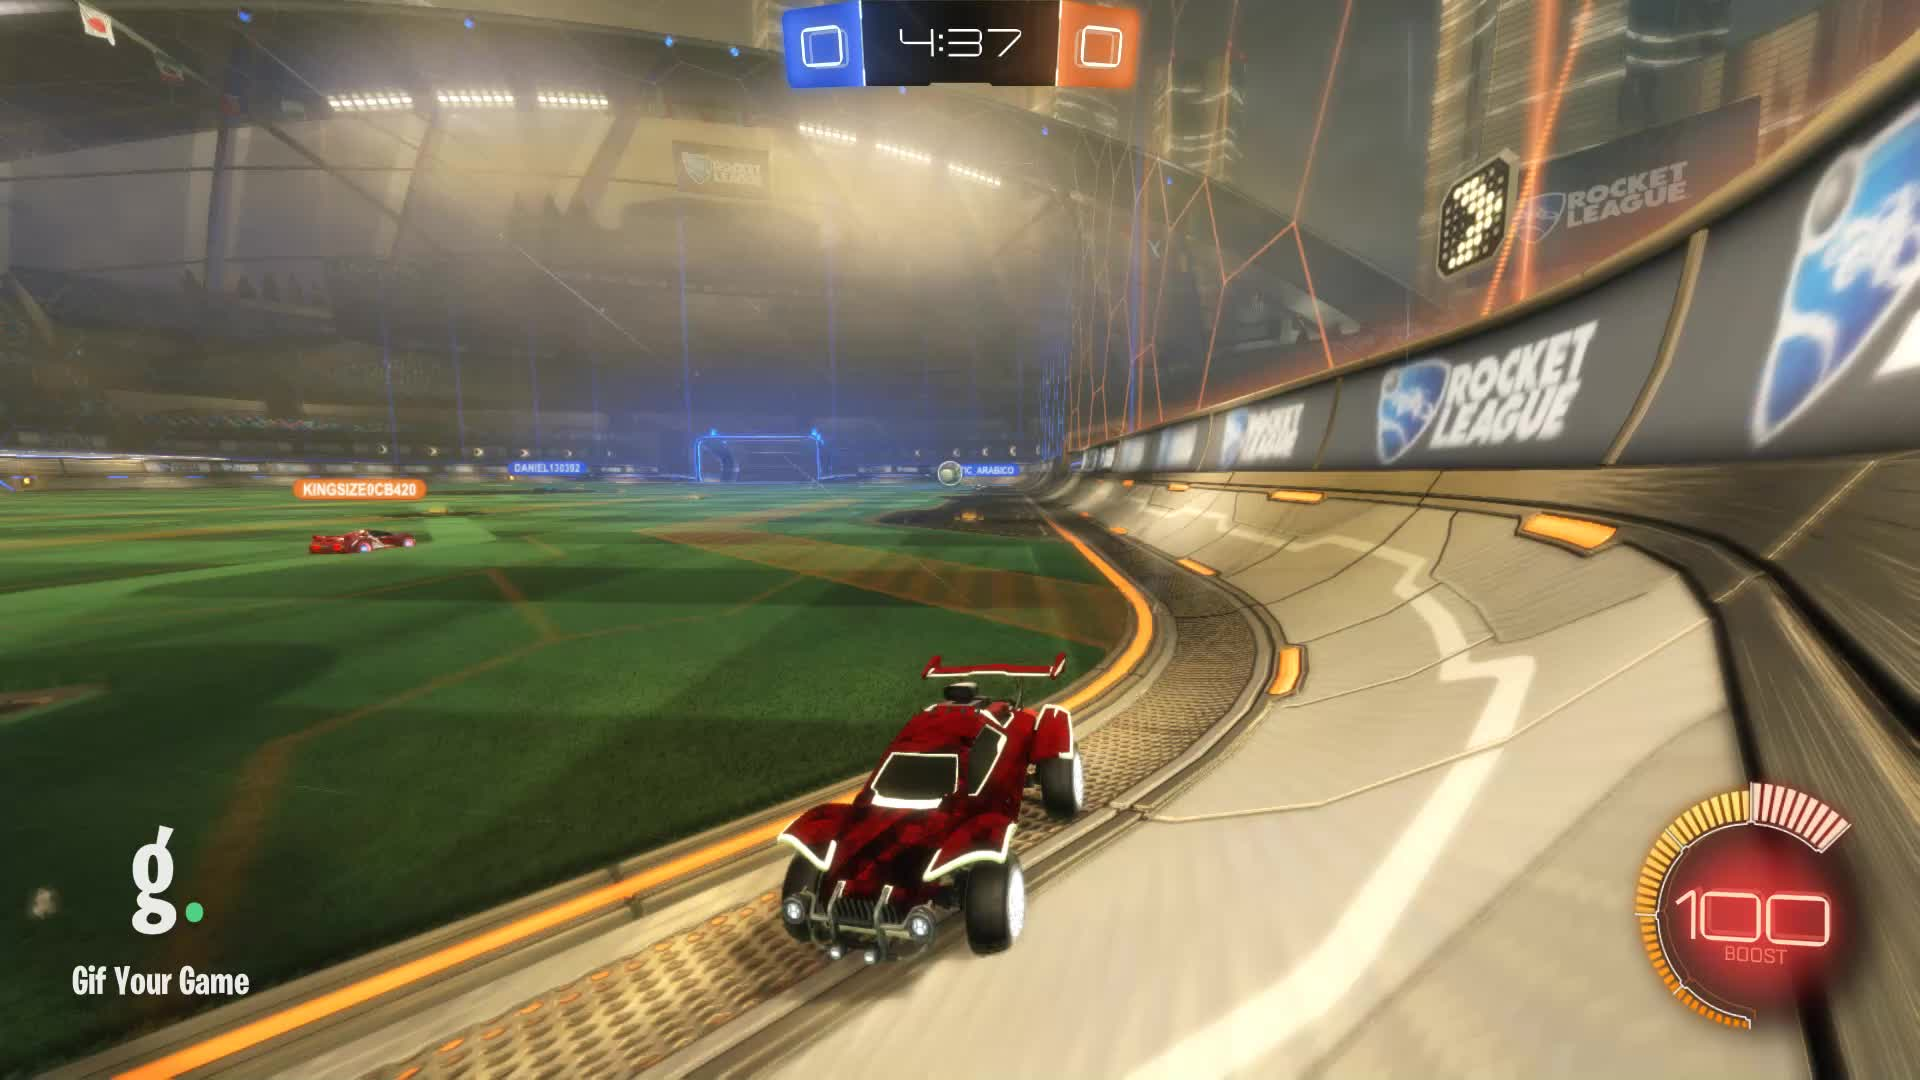 Gif Your Game, GifYourGame, Goal, Horizon, Rocket League, RocketLeague, Goal 1: Horizon GIFs